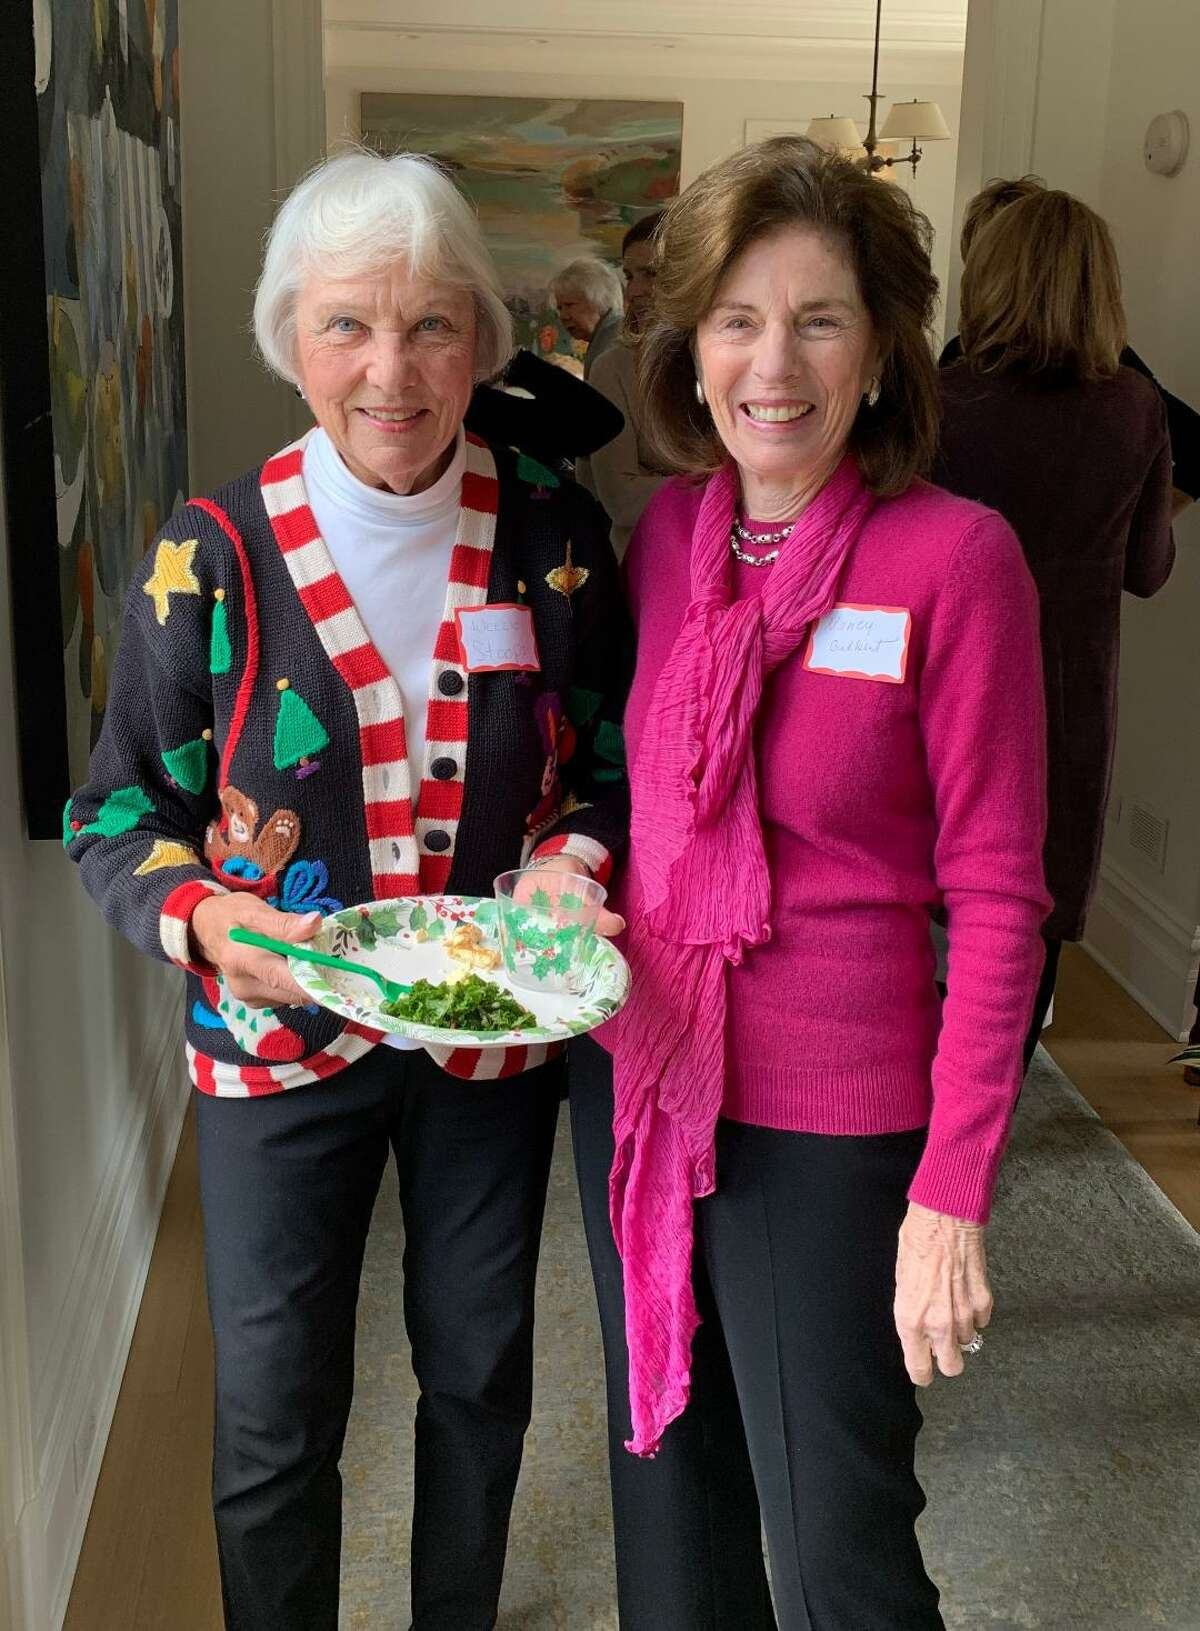 Louise Stoops and Nancy Gilbert at the Congregational Church of New Canaan's Women's Fellowship Luncheon.